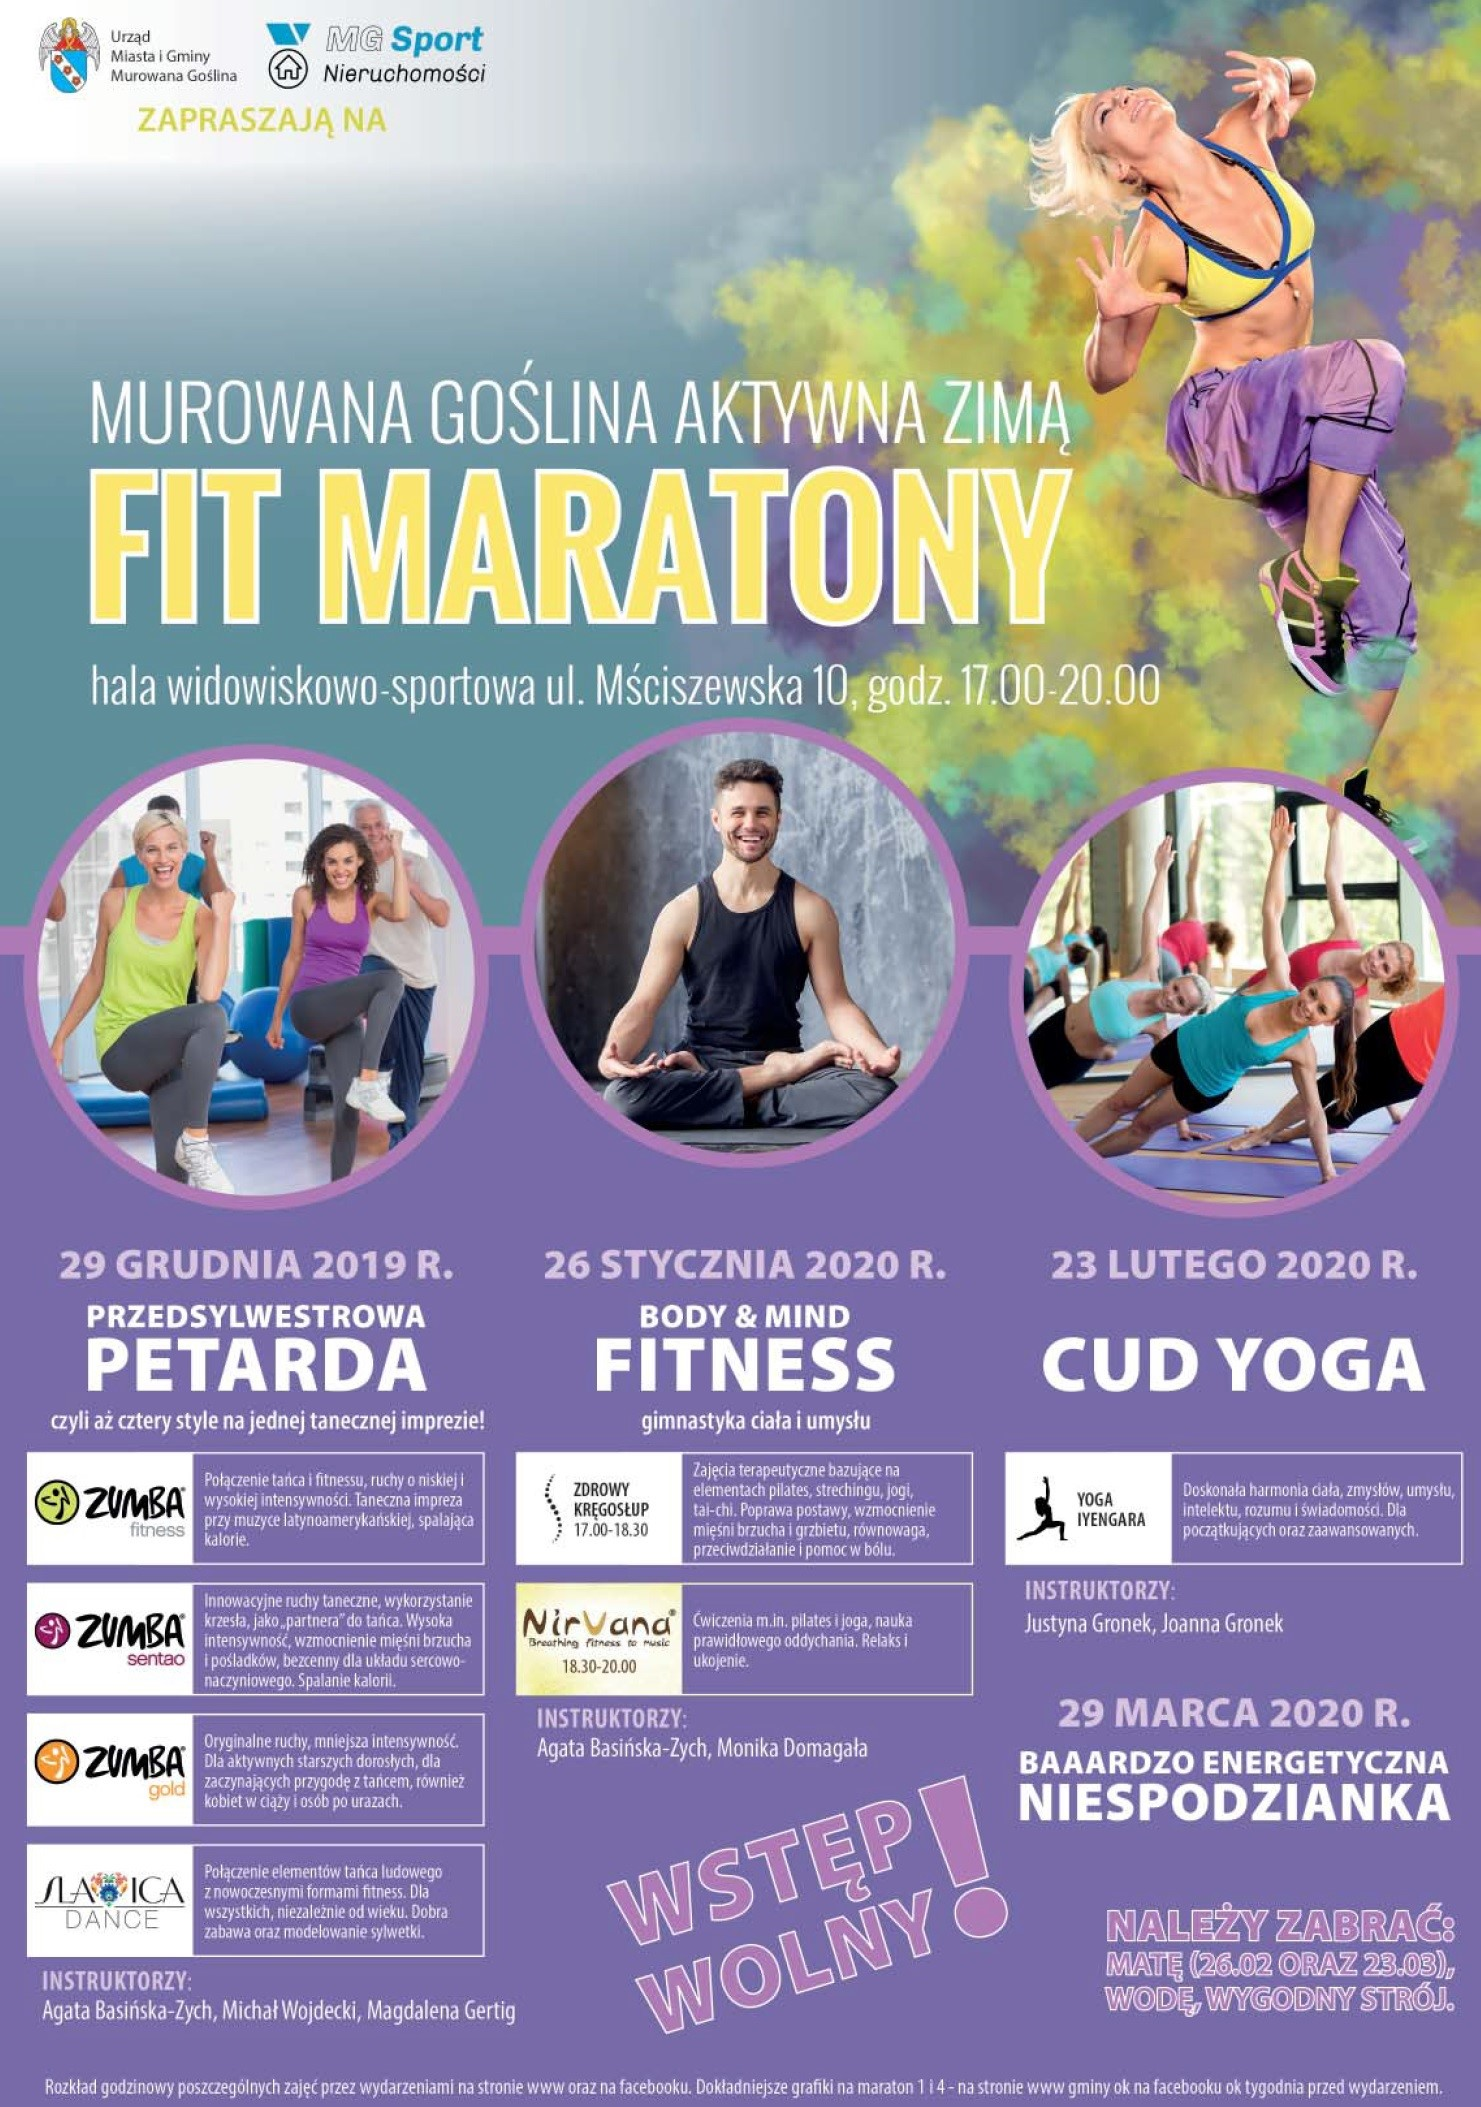 Fit Maratony - Body&Mind Fitness